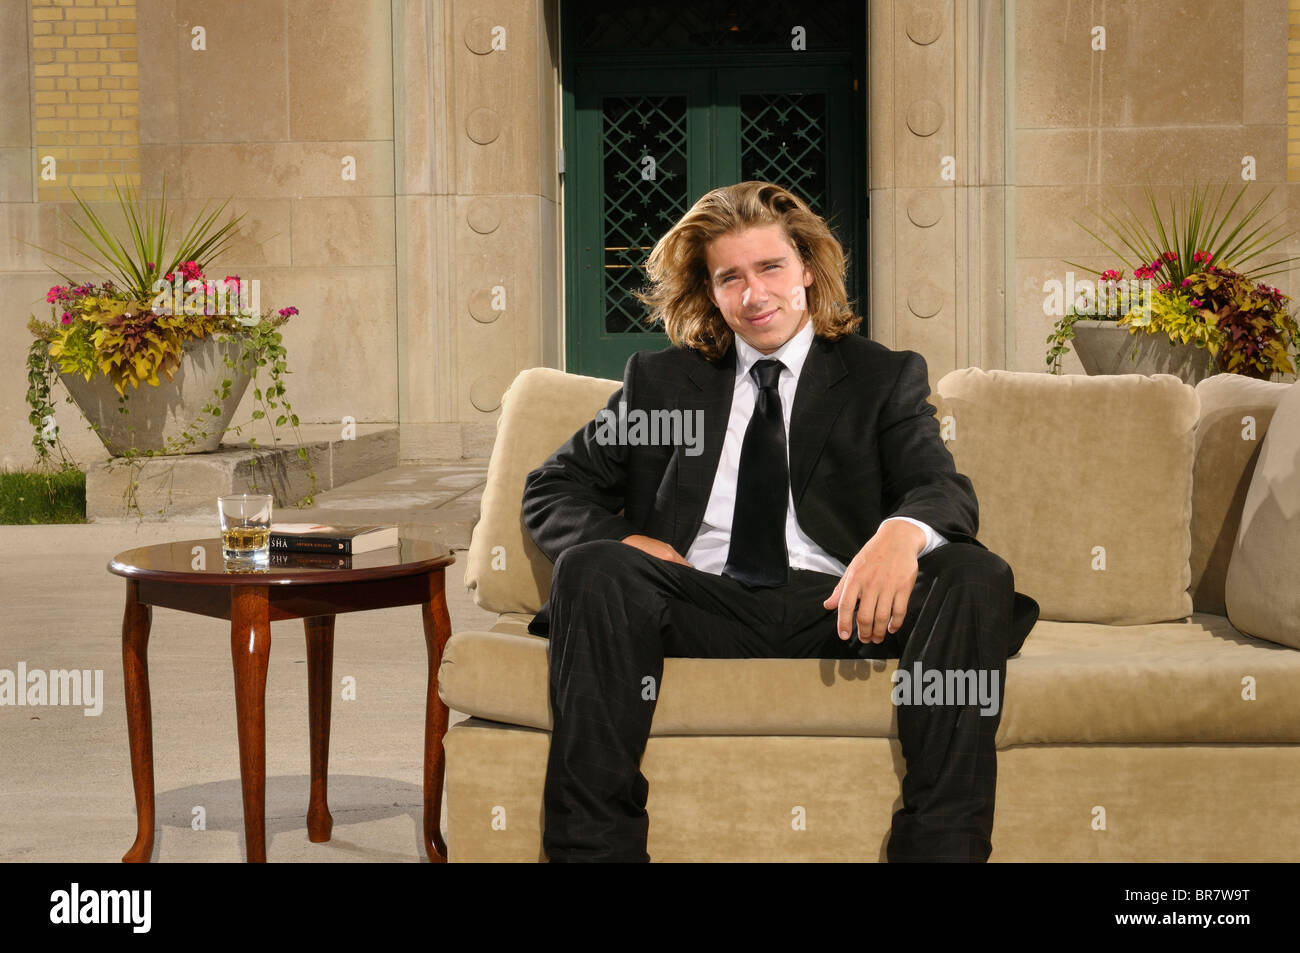 Wealthy Young Man With Long Blond Hair In Suit Sitting On